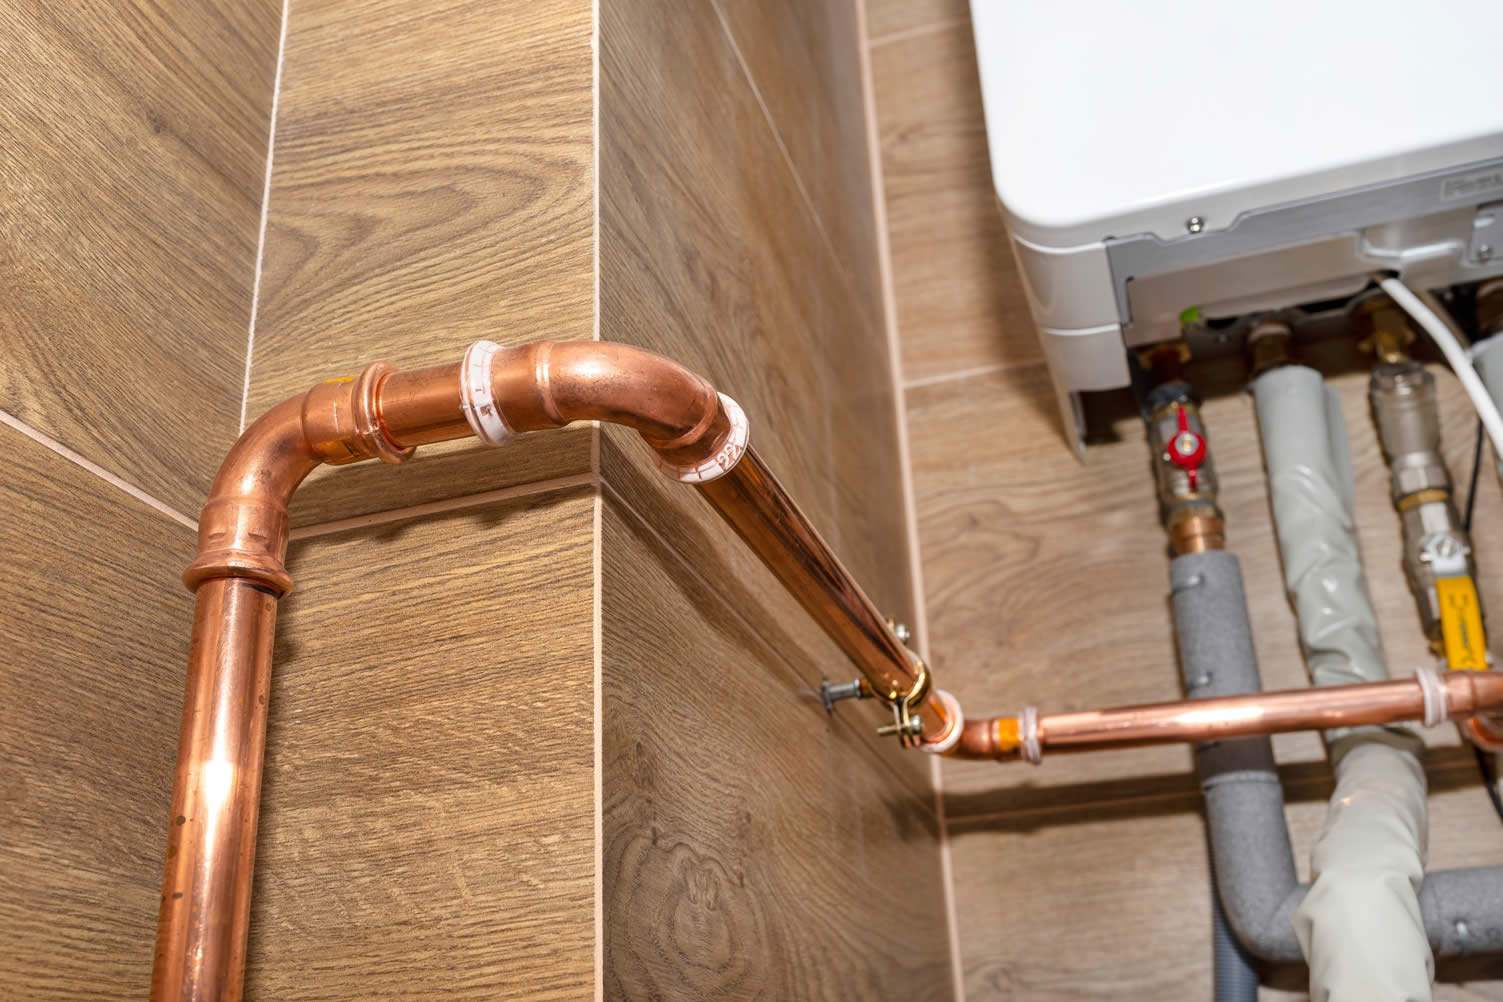 common reasons for a damaged water line